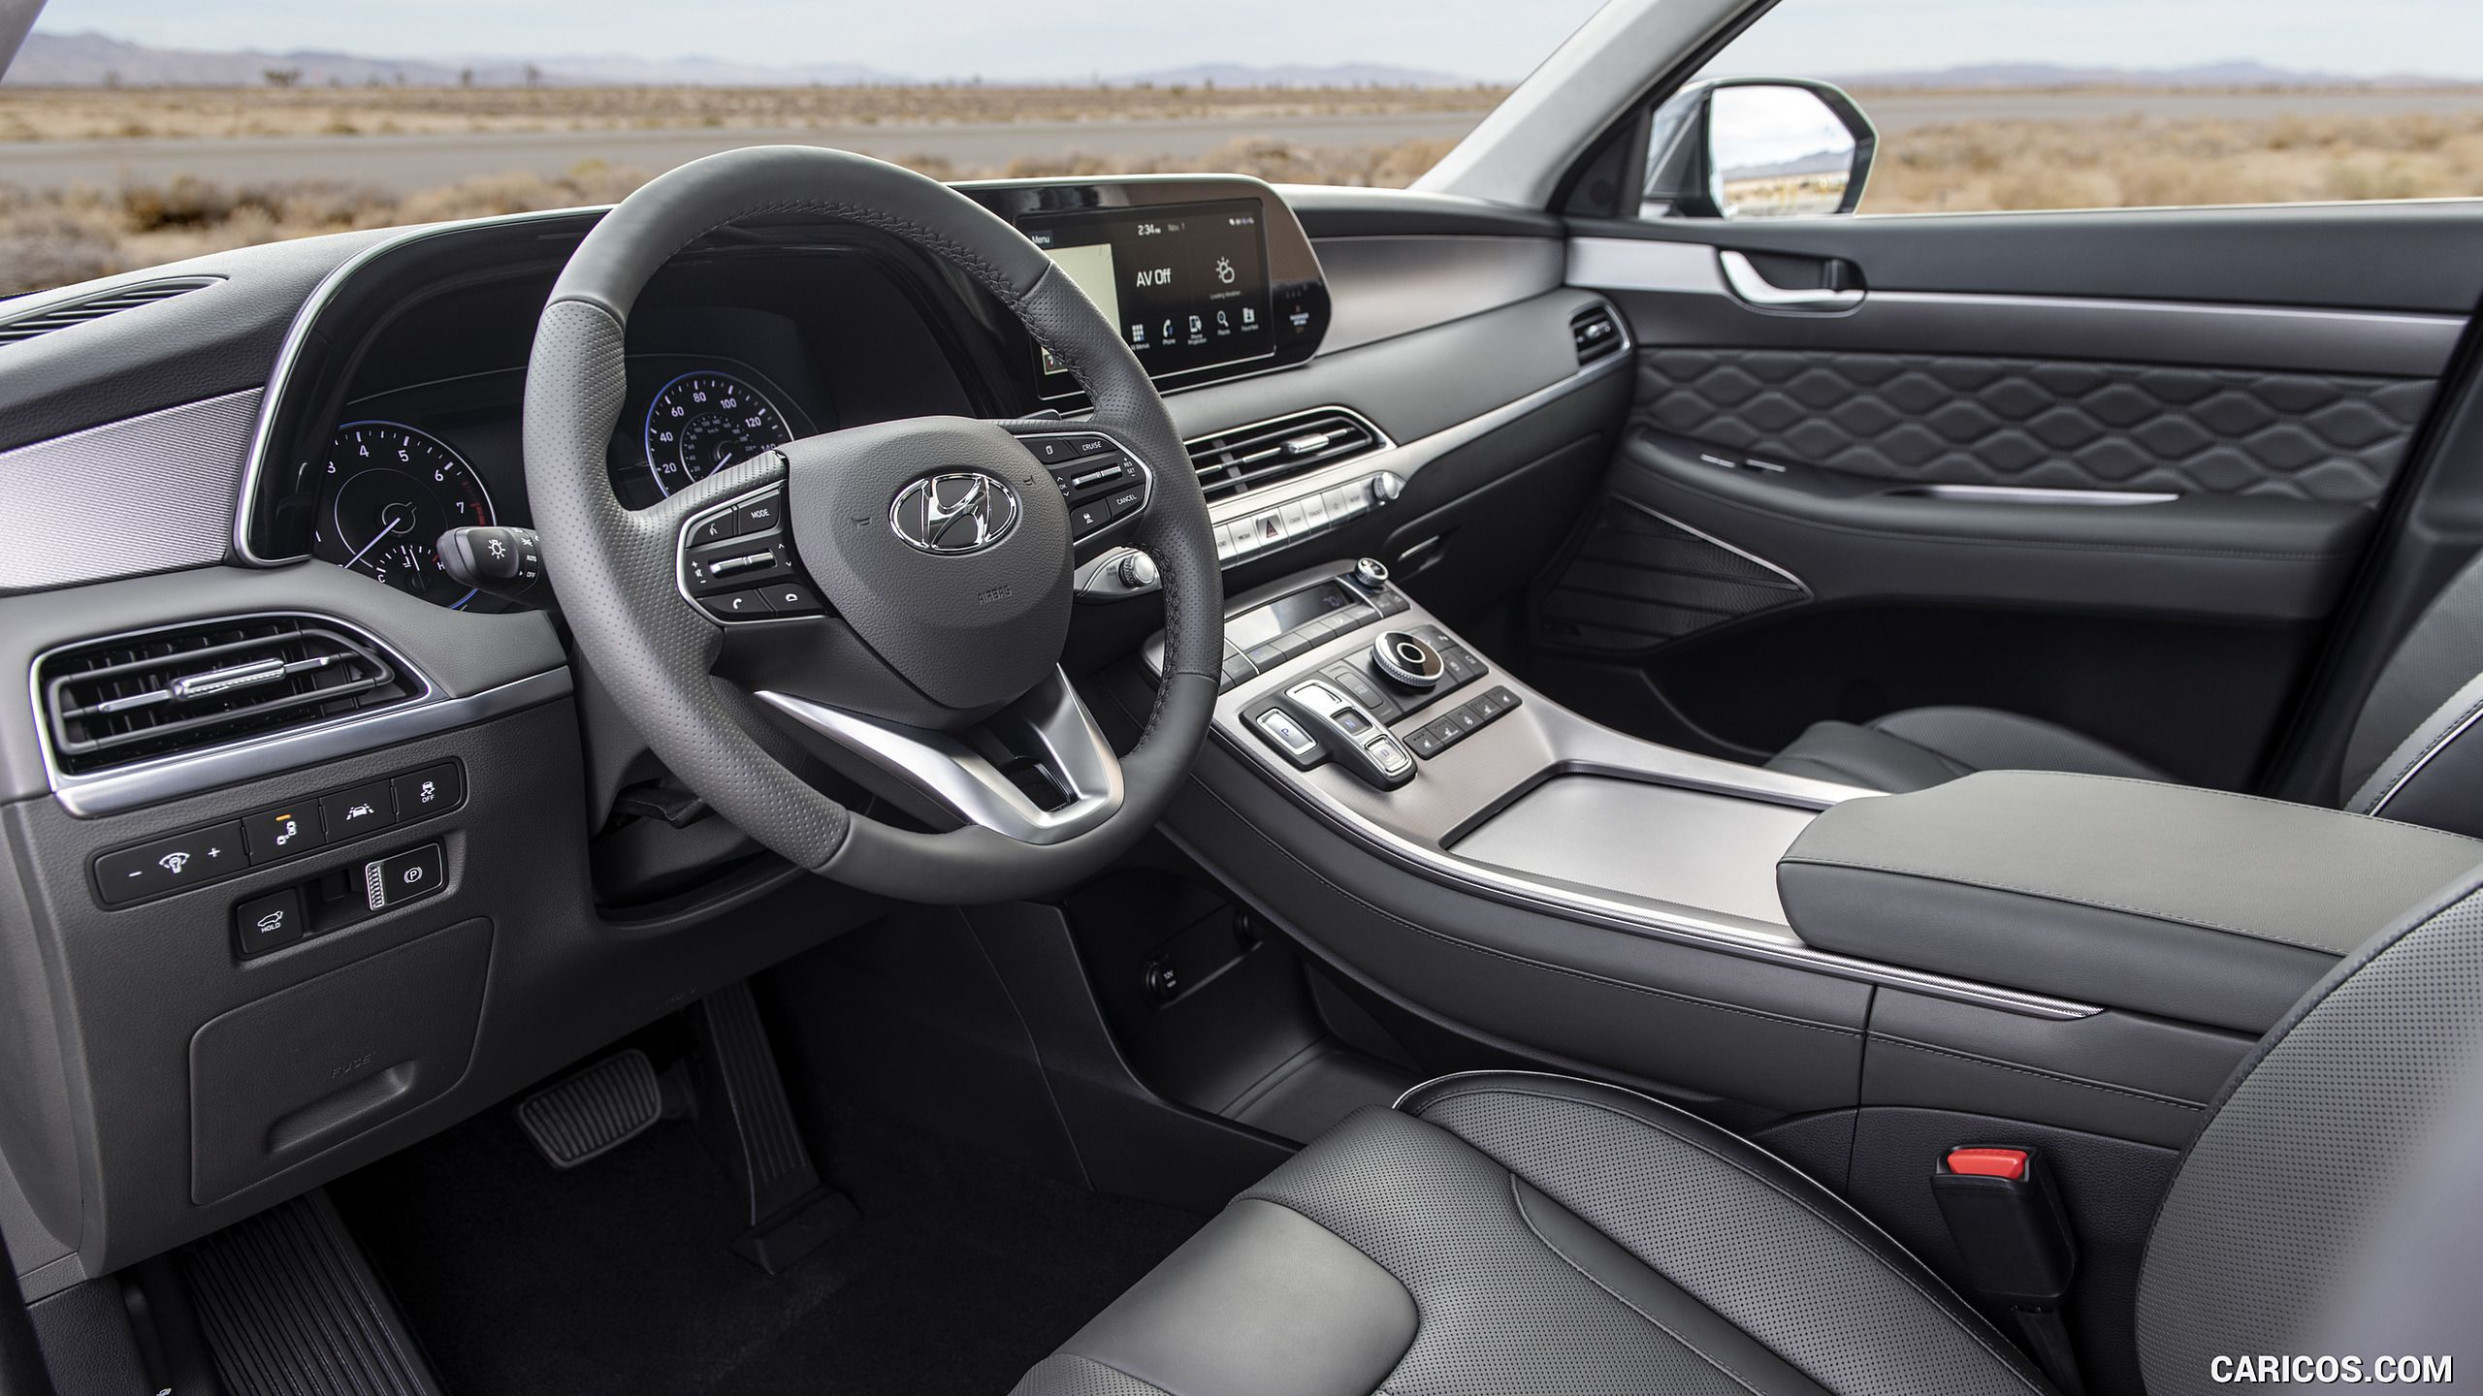 Next stop: Pinterest (With images) | Hyundai, New cars, Palisades - 2020 hyundai palisade interior